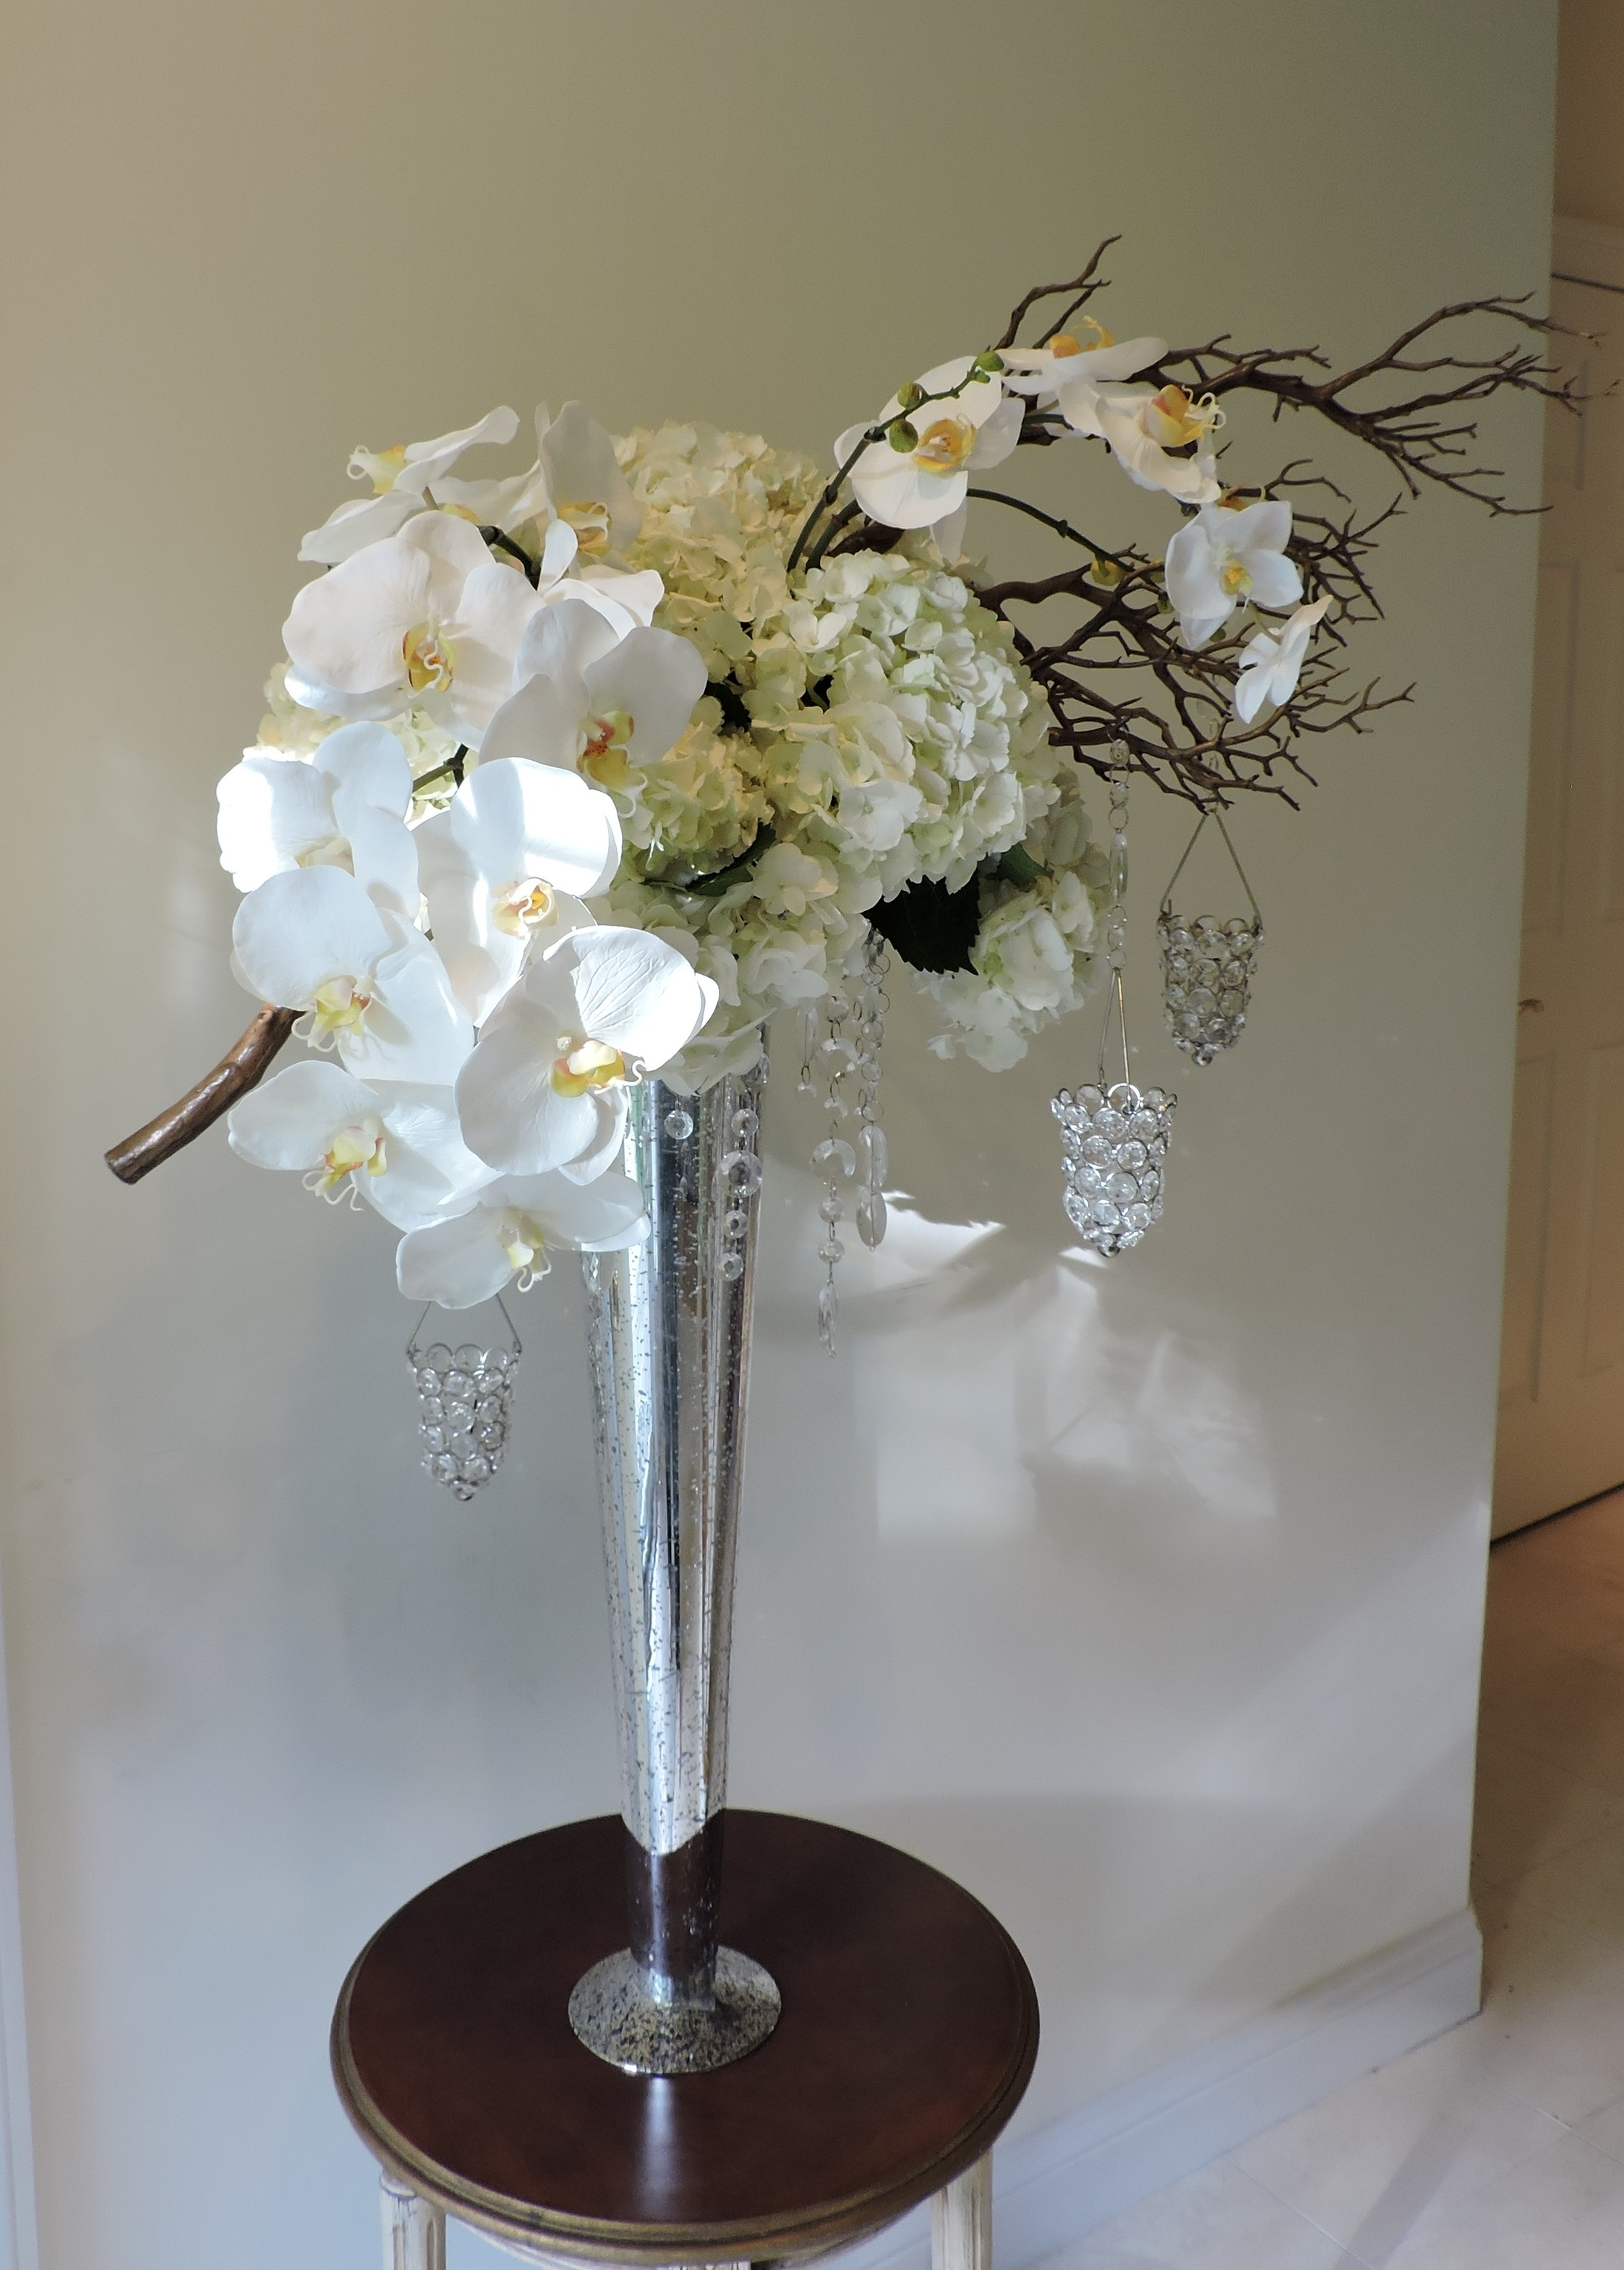 Orchids and Hydgrangeas